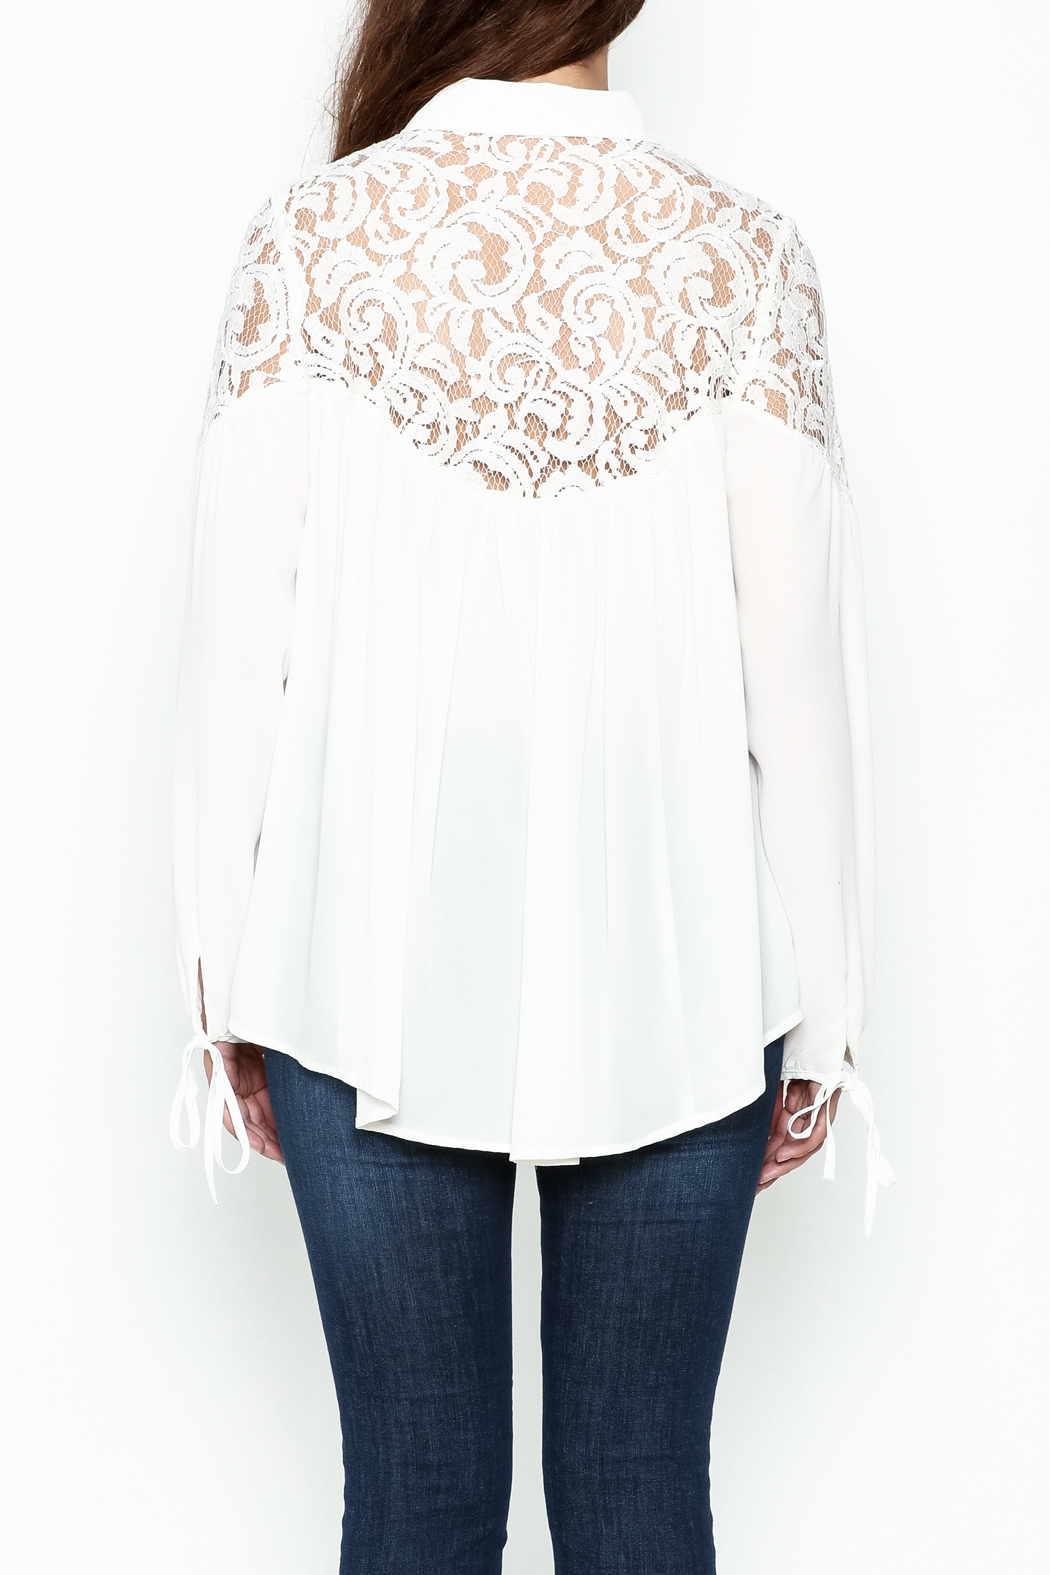 Elan Ivory Lace Blouse - Back Cropped Image